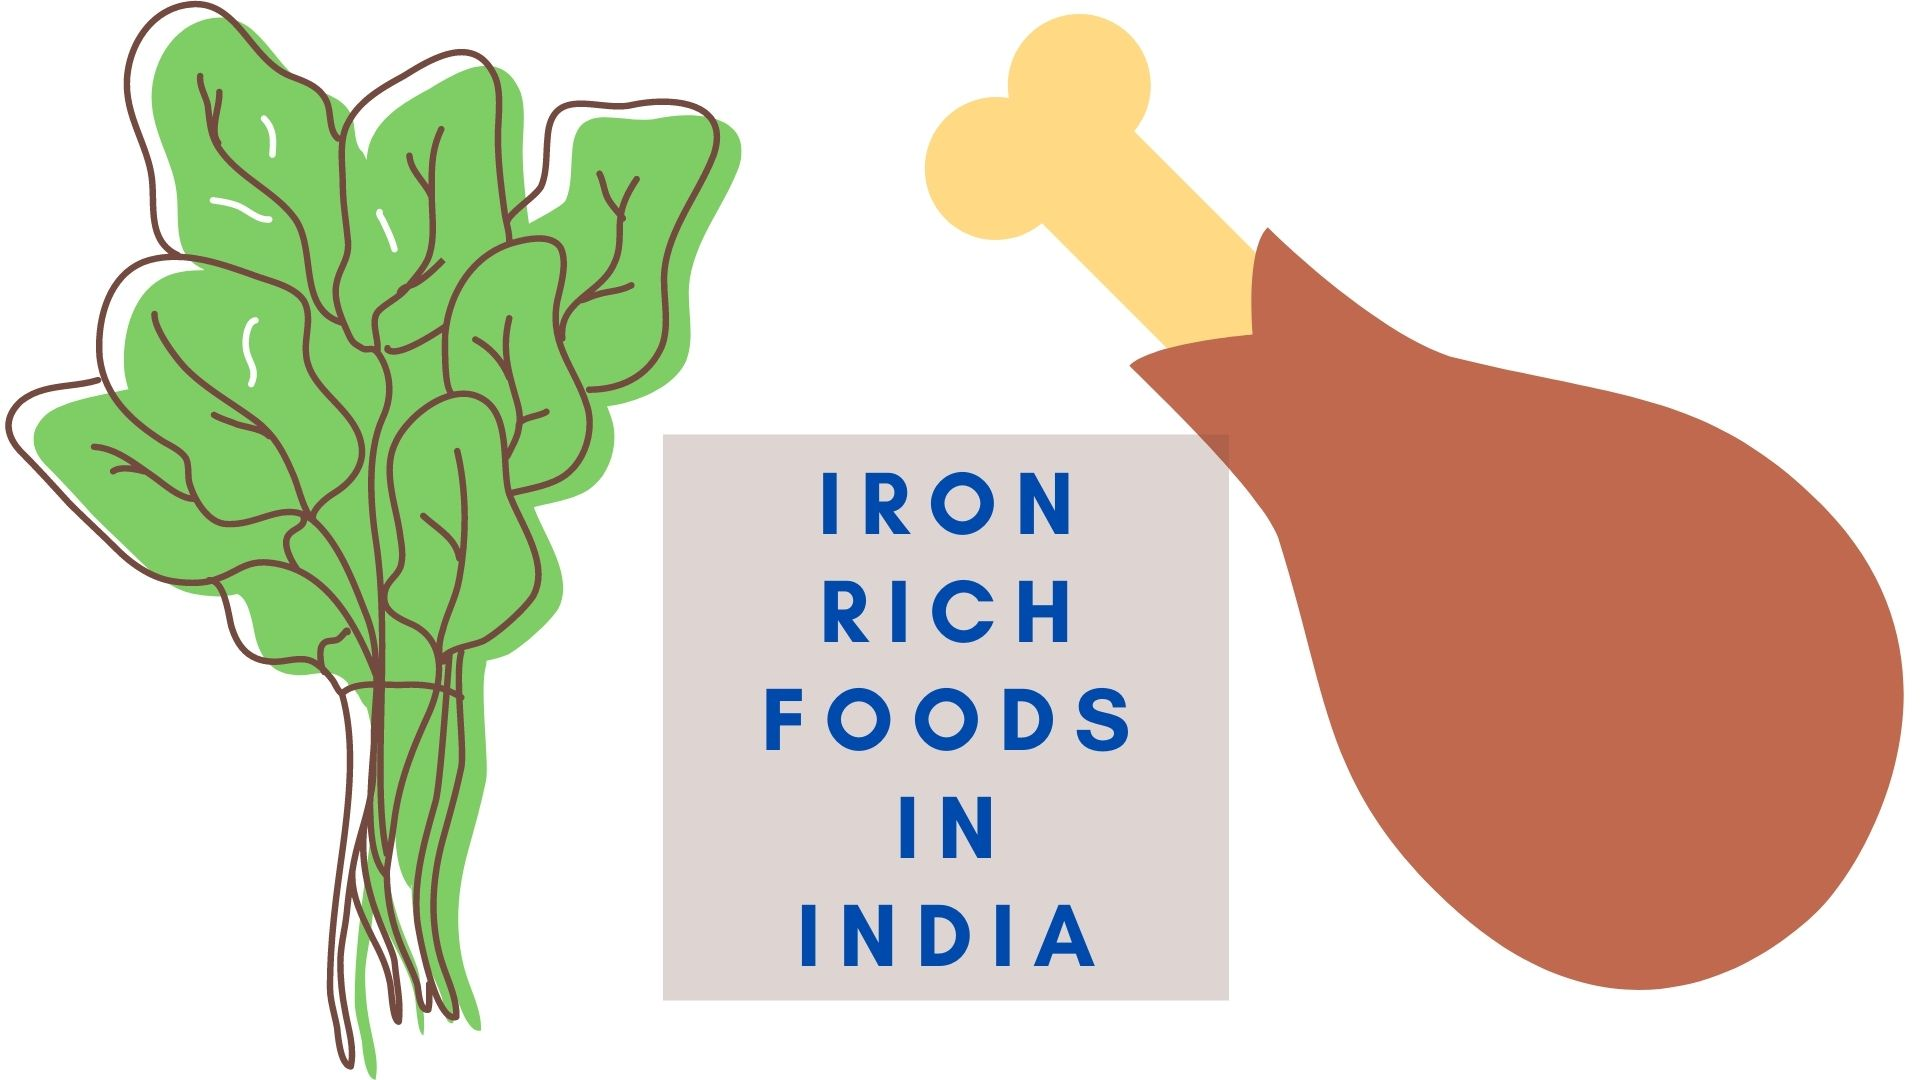 Iron Rich foods in India